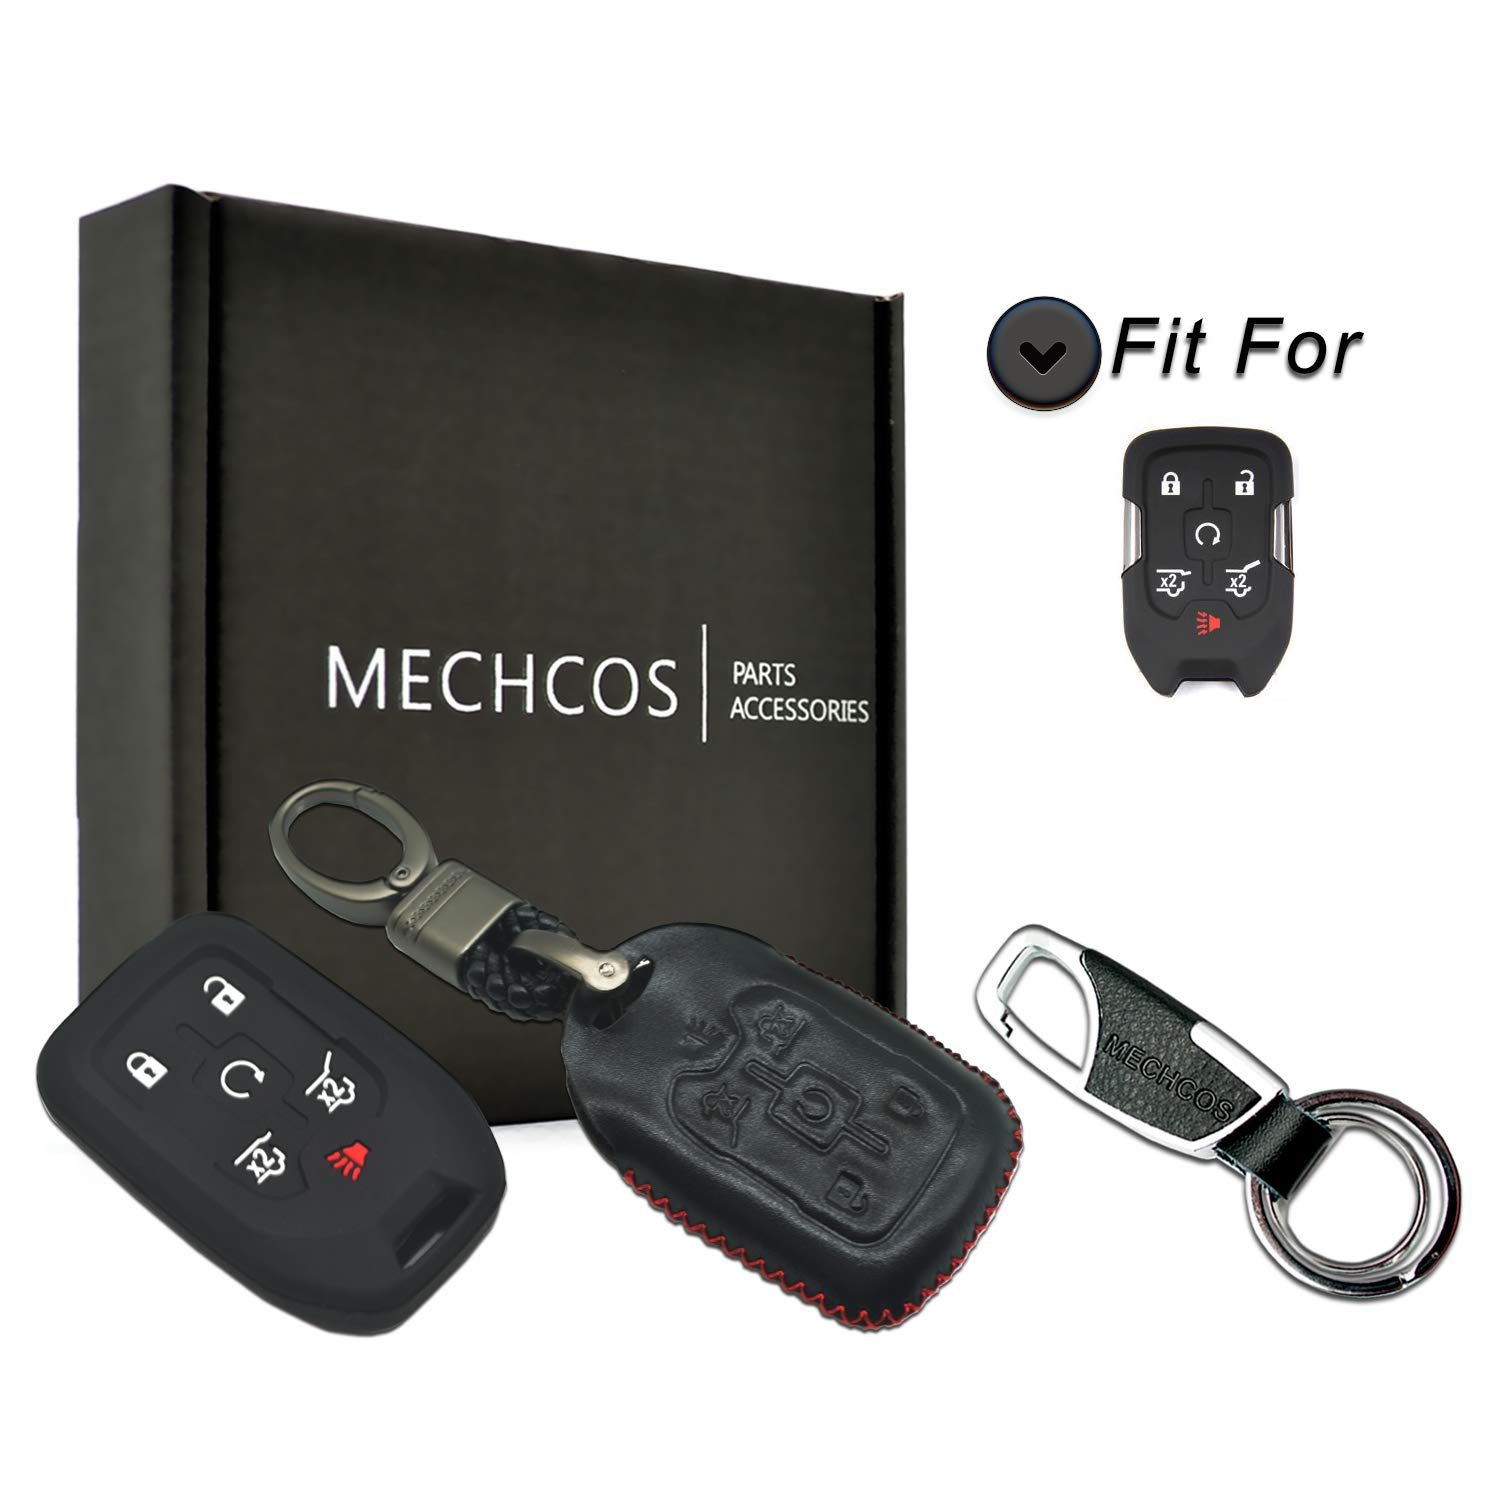 MECHCOS Compatible with fit for 2015 2016 2017 2018 2019 Chevrolet Suburban Tahoe 2015-2018 GMC Yukon XL 6 Buttons Leather Smart Key Fob Cover Case Remote Skin Keyless Jacket Holder Protector Black